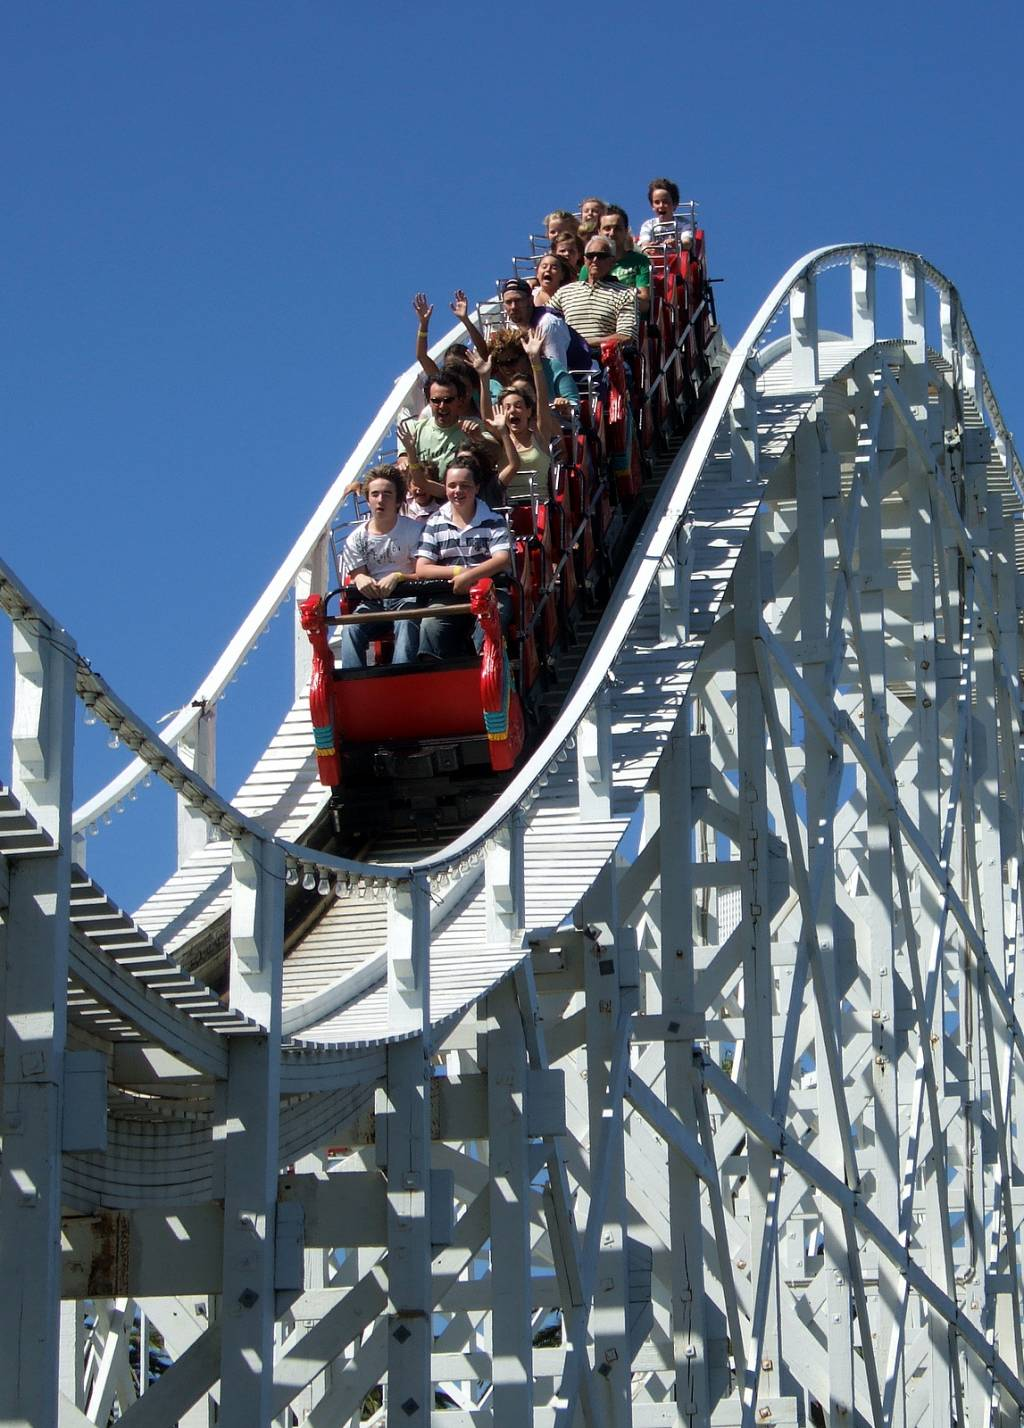 descriptive essays on roller coasters Descriptive essay roller coaster ride – research papers 7896423100259 an introduction to the issue of compating osteoporosis quando o samba acabou, various artists.